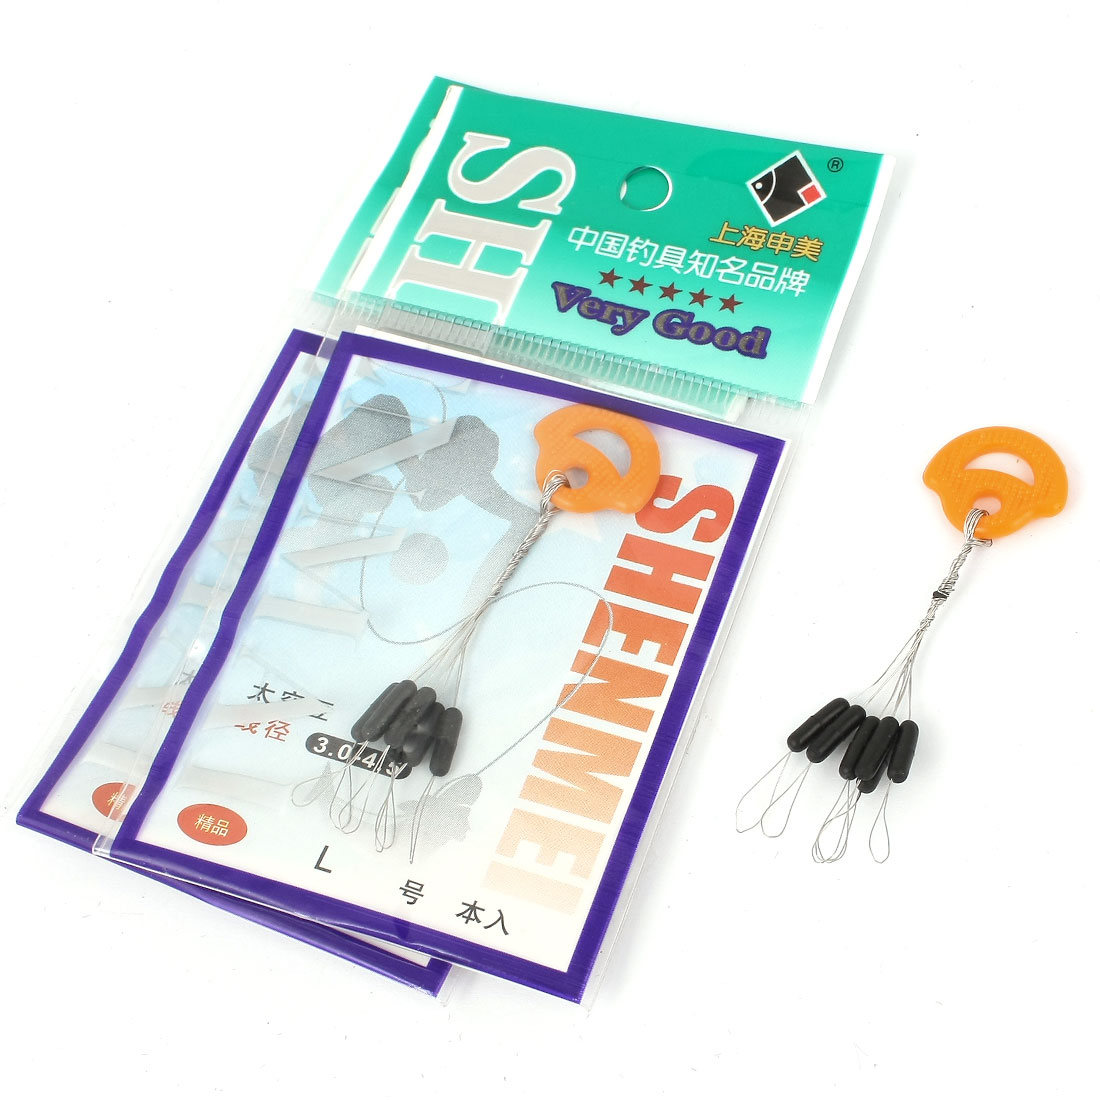 Unique Bargains 6 in 1 Rubber Fishing Floaters Bobbers Size L 7 x 2 mm 3 Pcs by